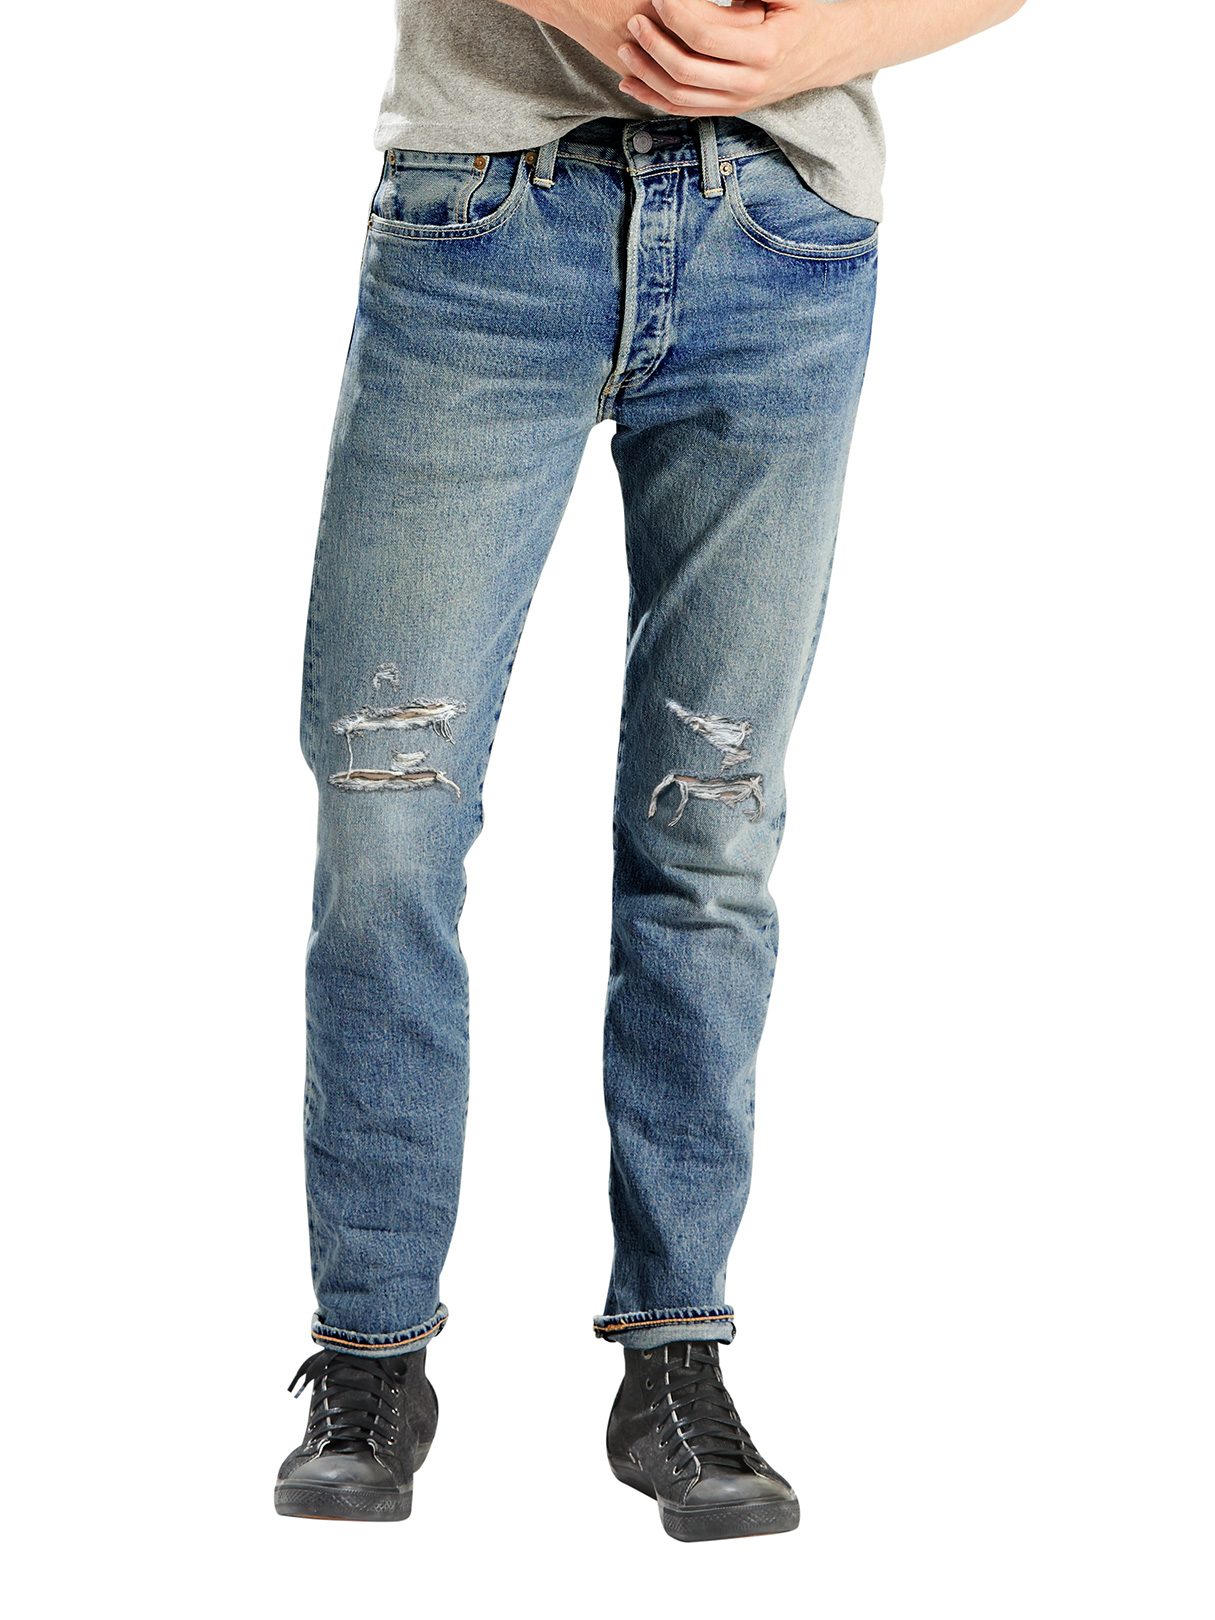 levi 39 s light wash 501 skinny bad boy jeans stand out. Black Bedroom Furniture Sets. Home Design Ideas